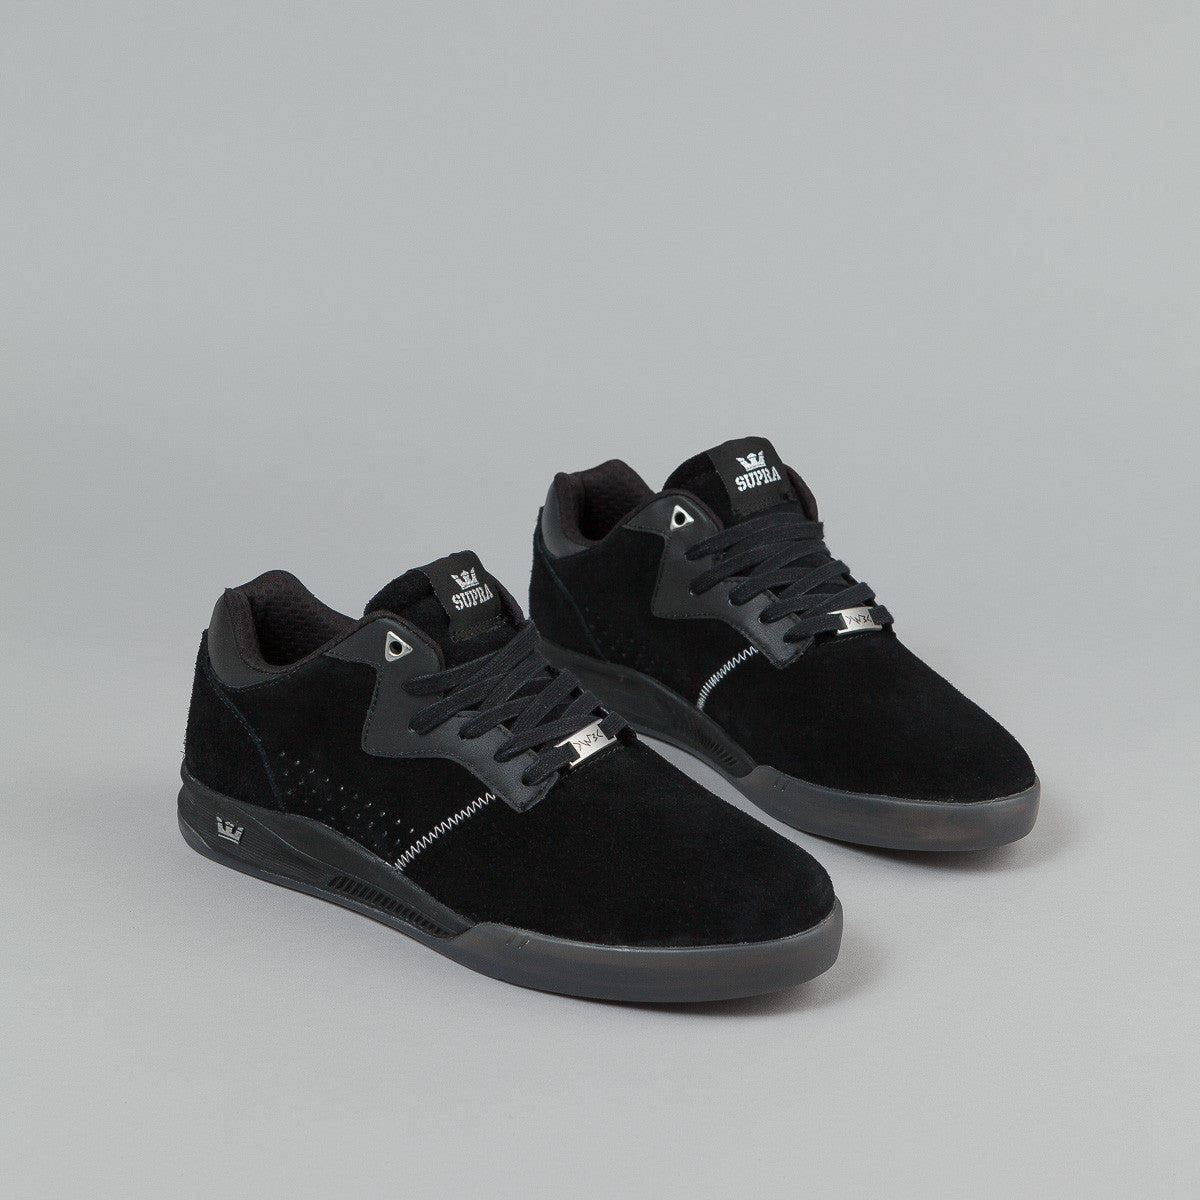 Supra Quattro Shoes (Lucien Clarke) - Black / Grey / Translucent